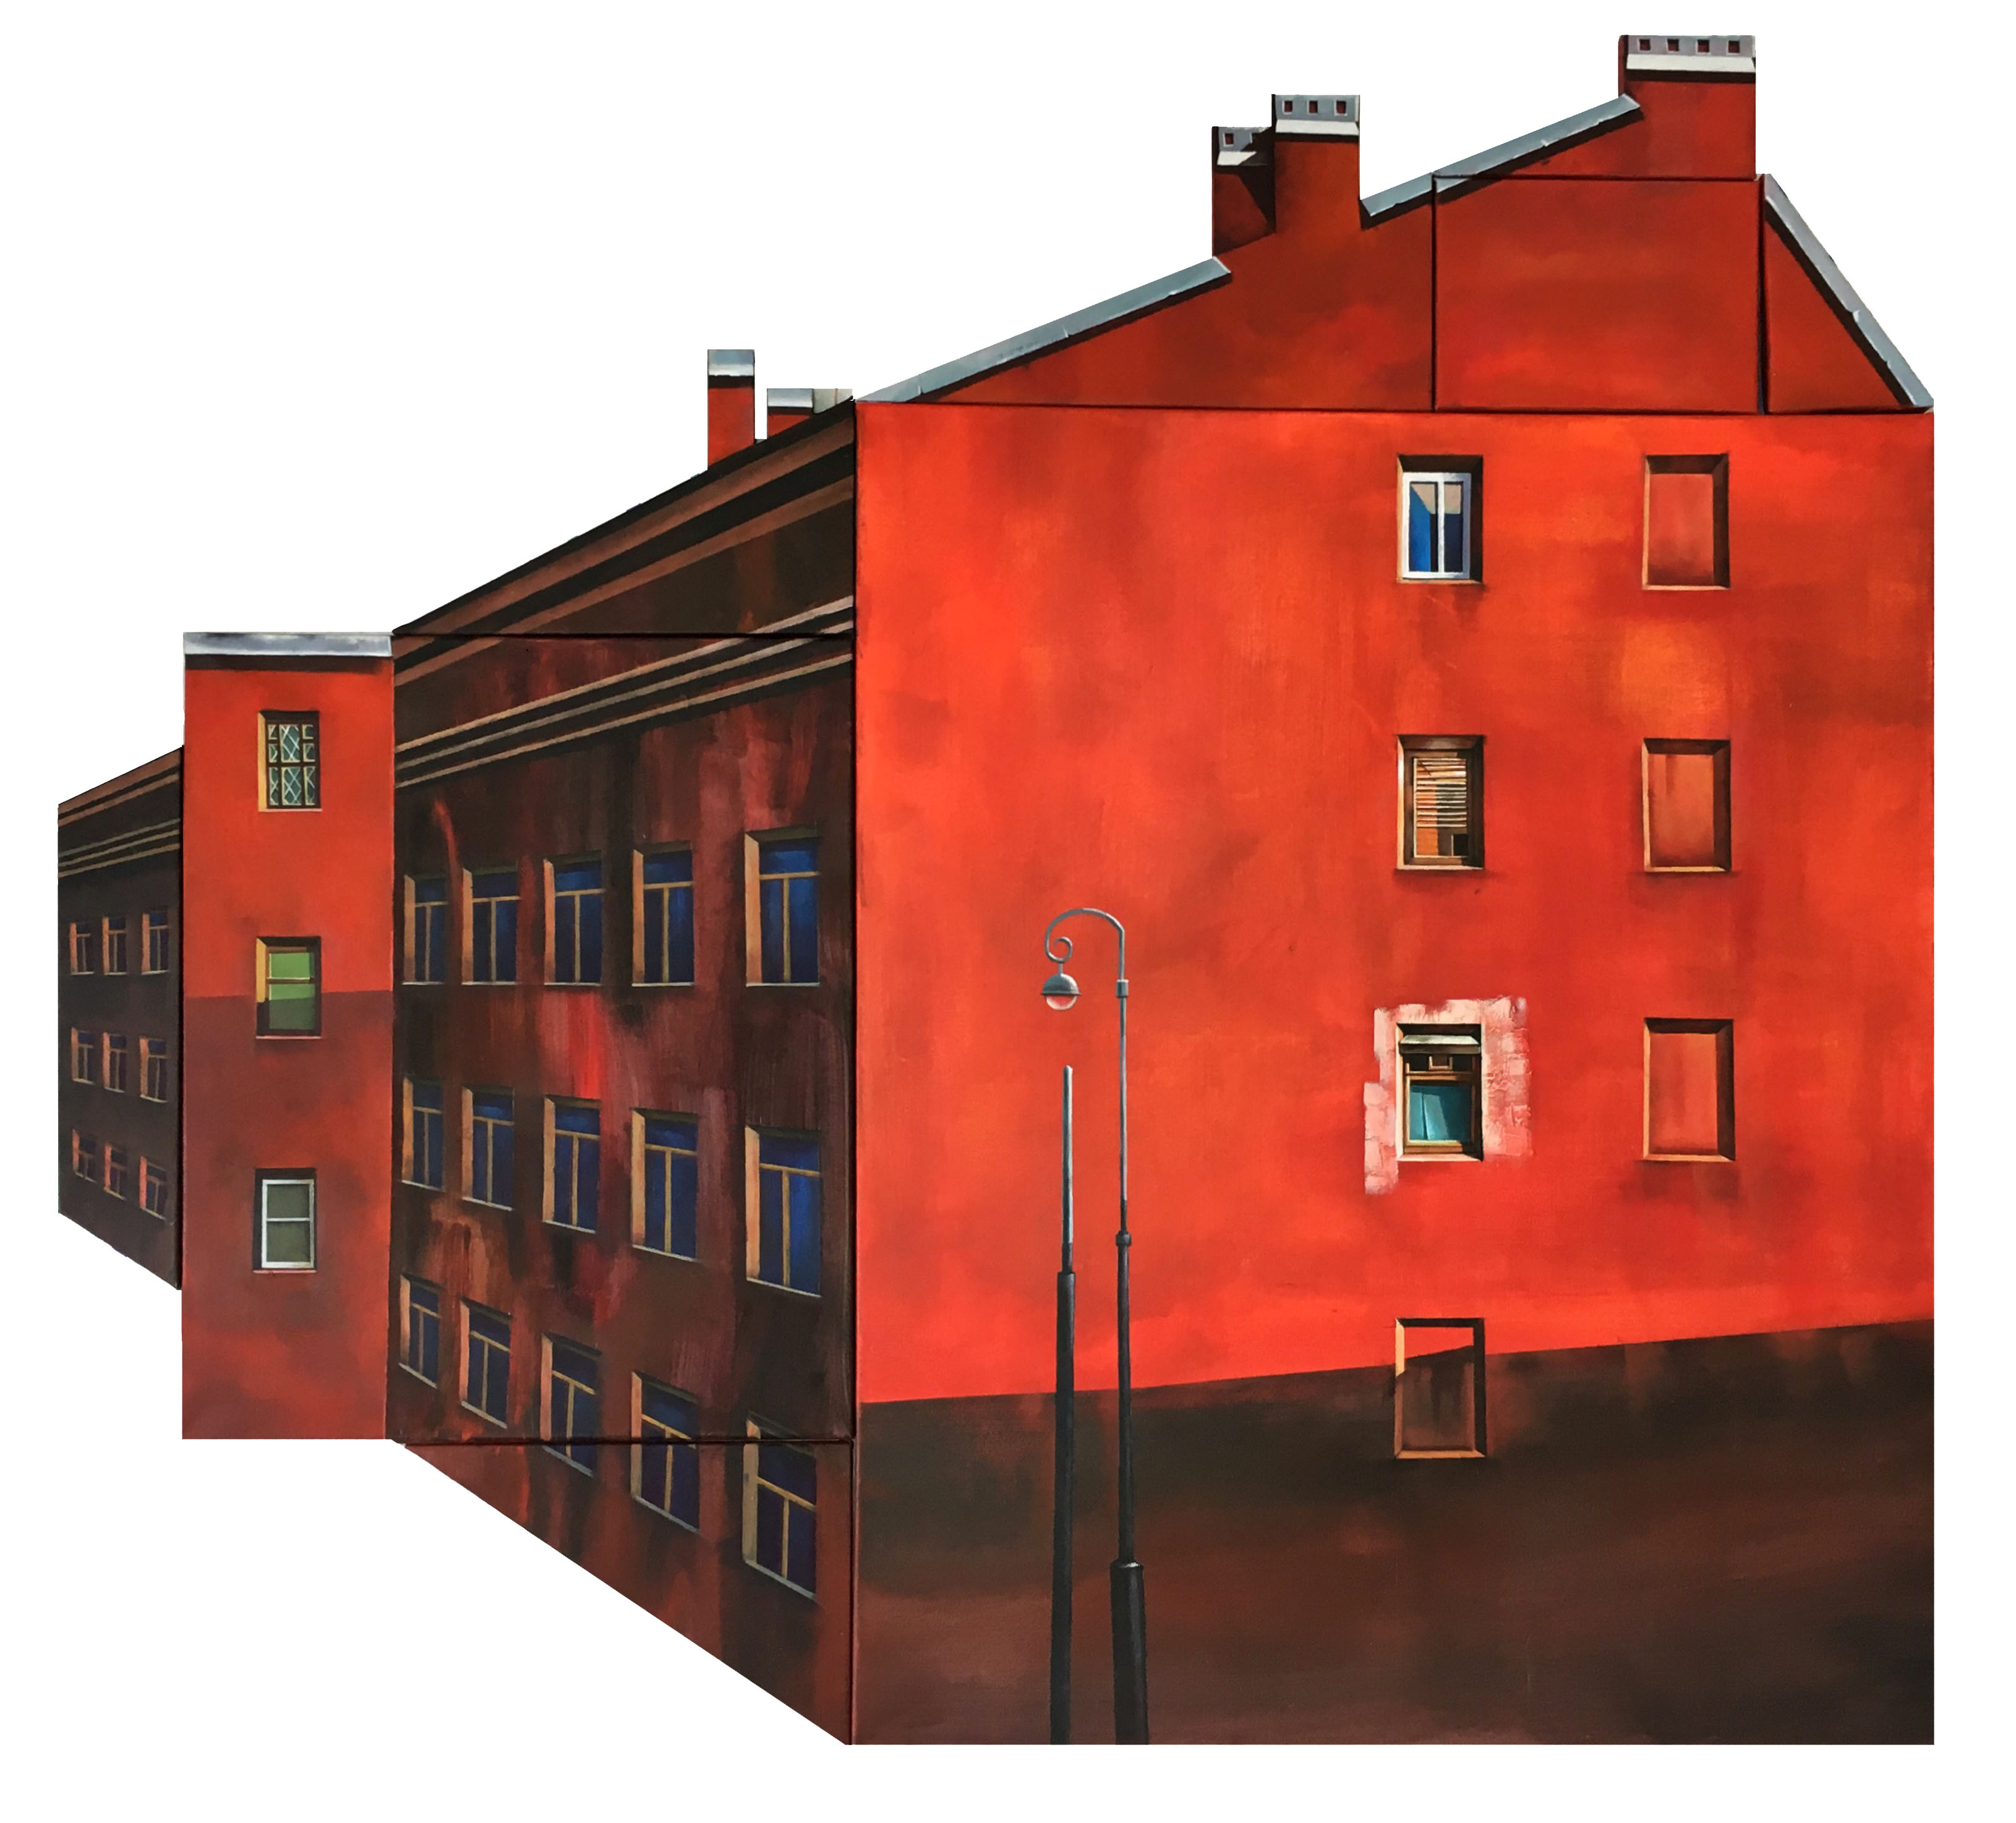 The red house from the Immersion series, Dinara Hartnagle, Buy the painting Oil